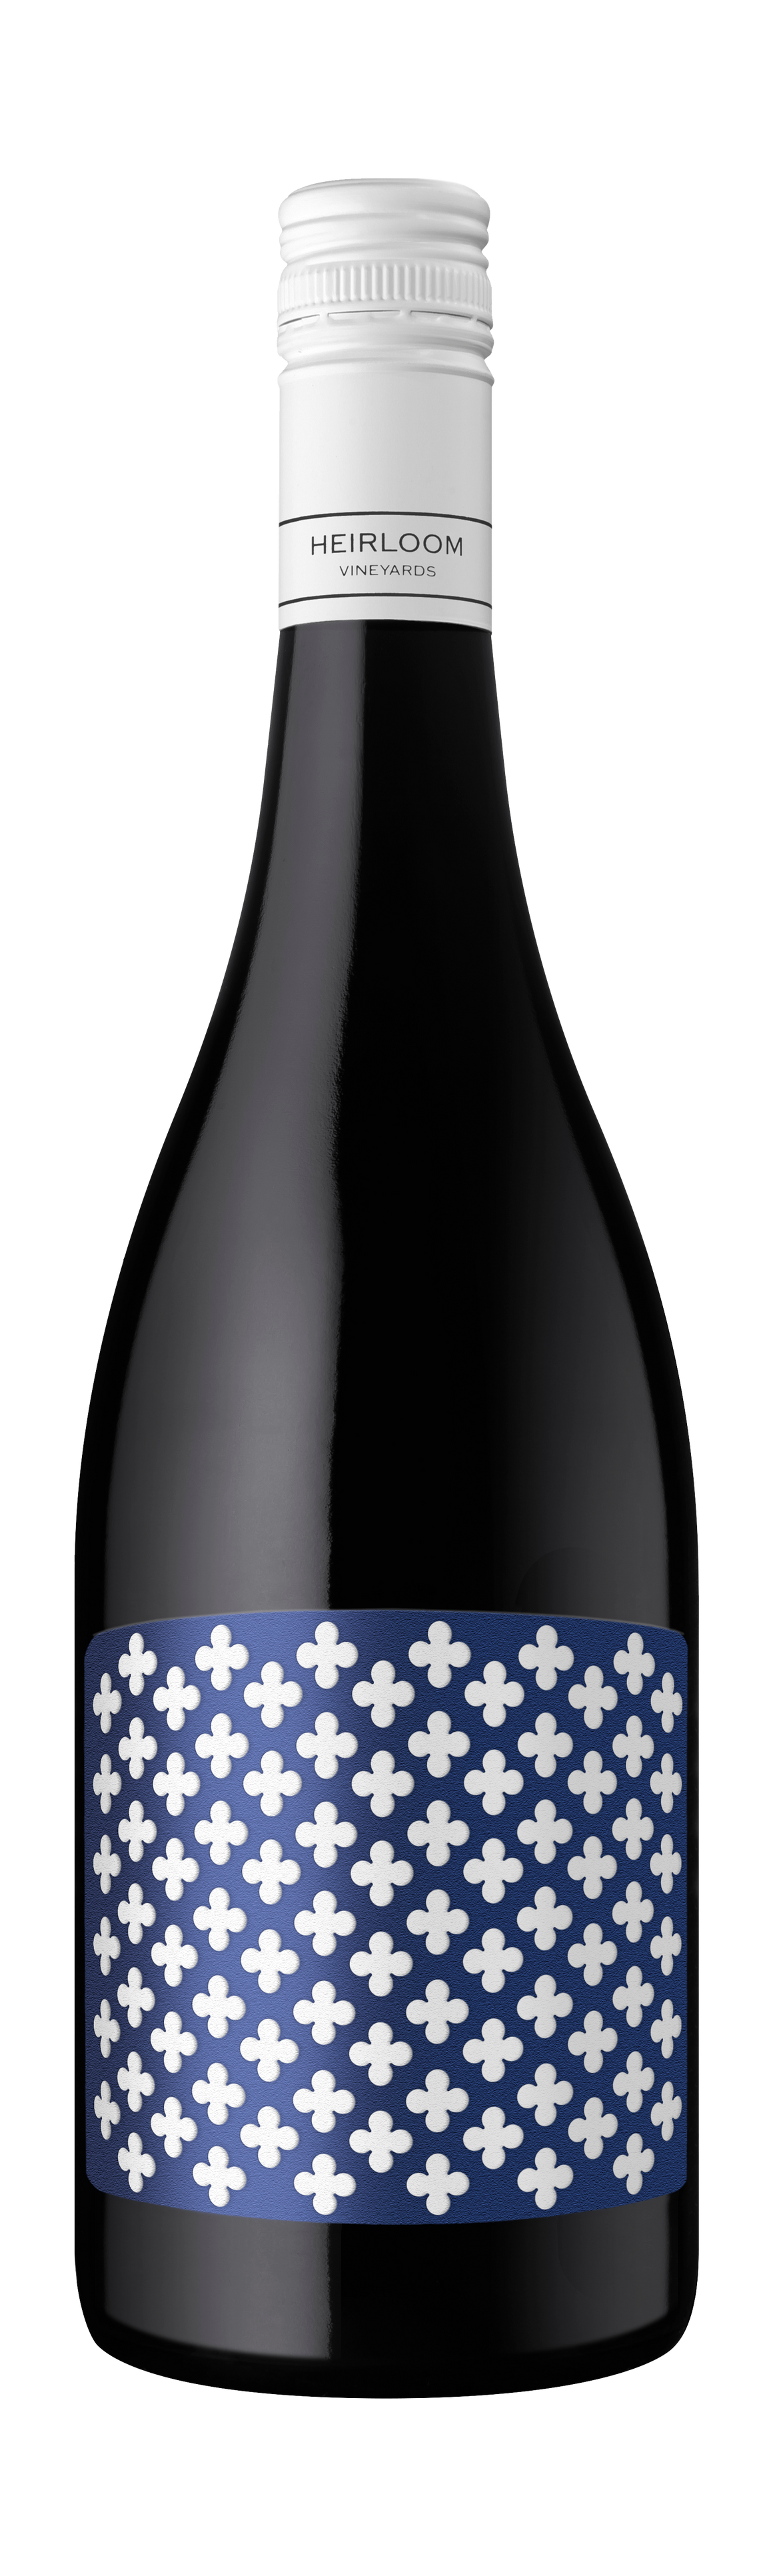 2019 Heirloom Vineyards Alcazar Castle Adelaide Hills Pinot Noir